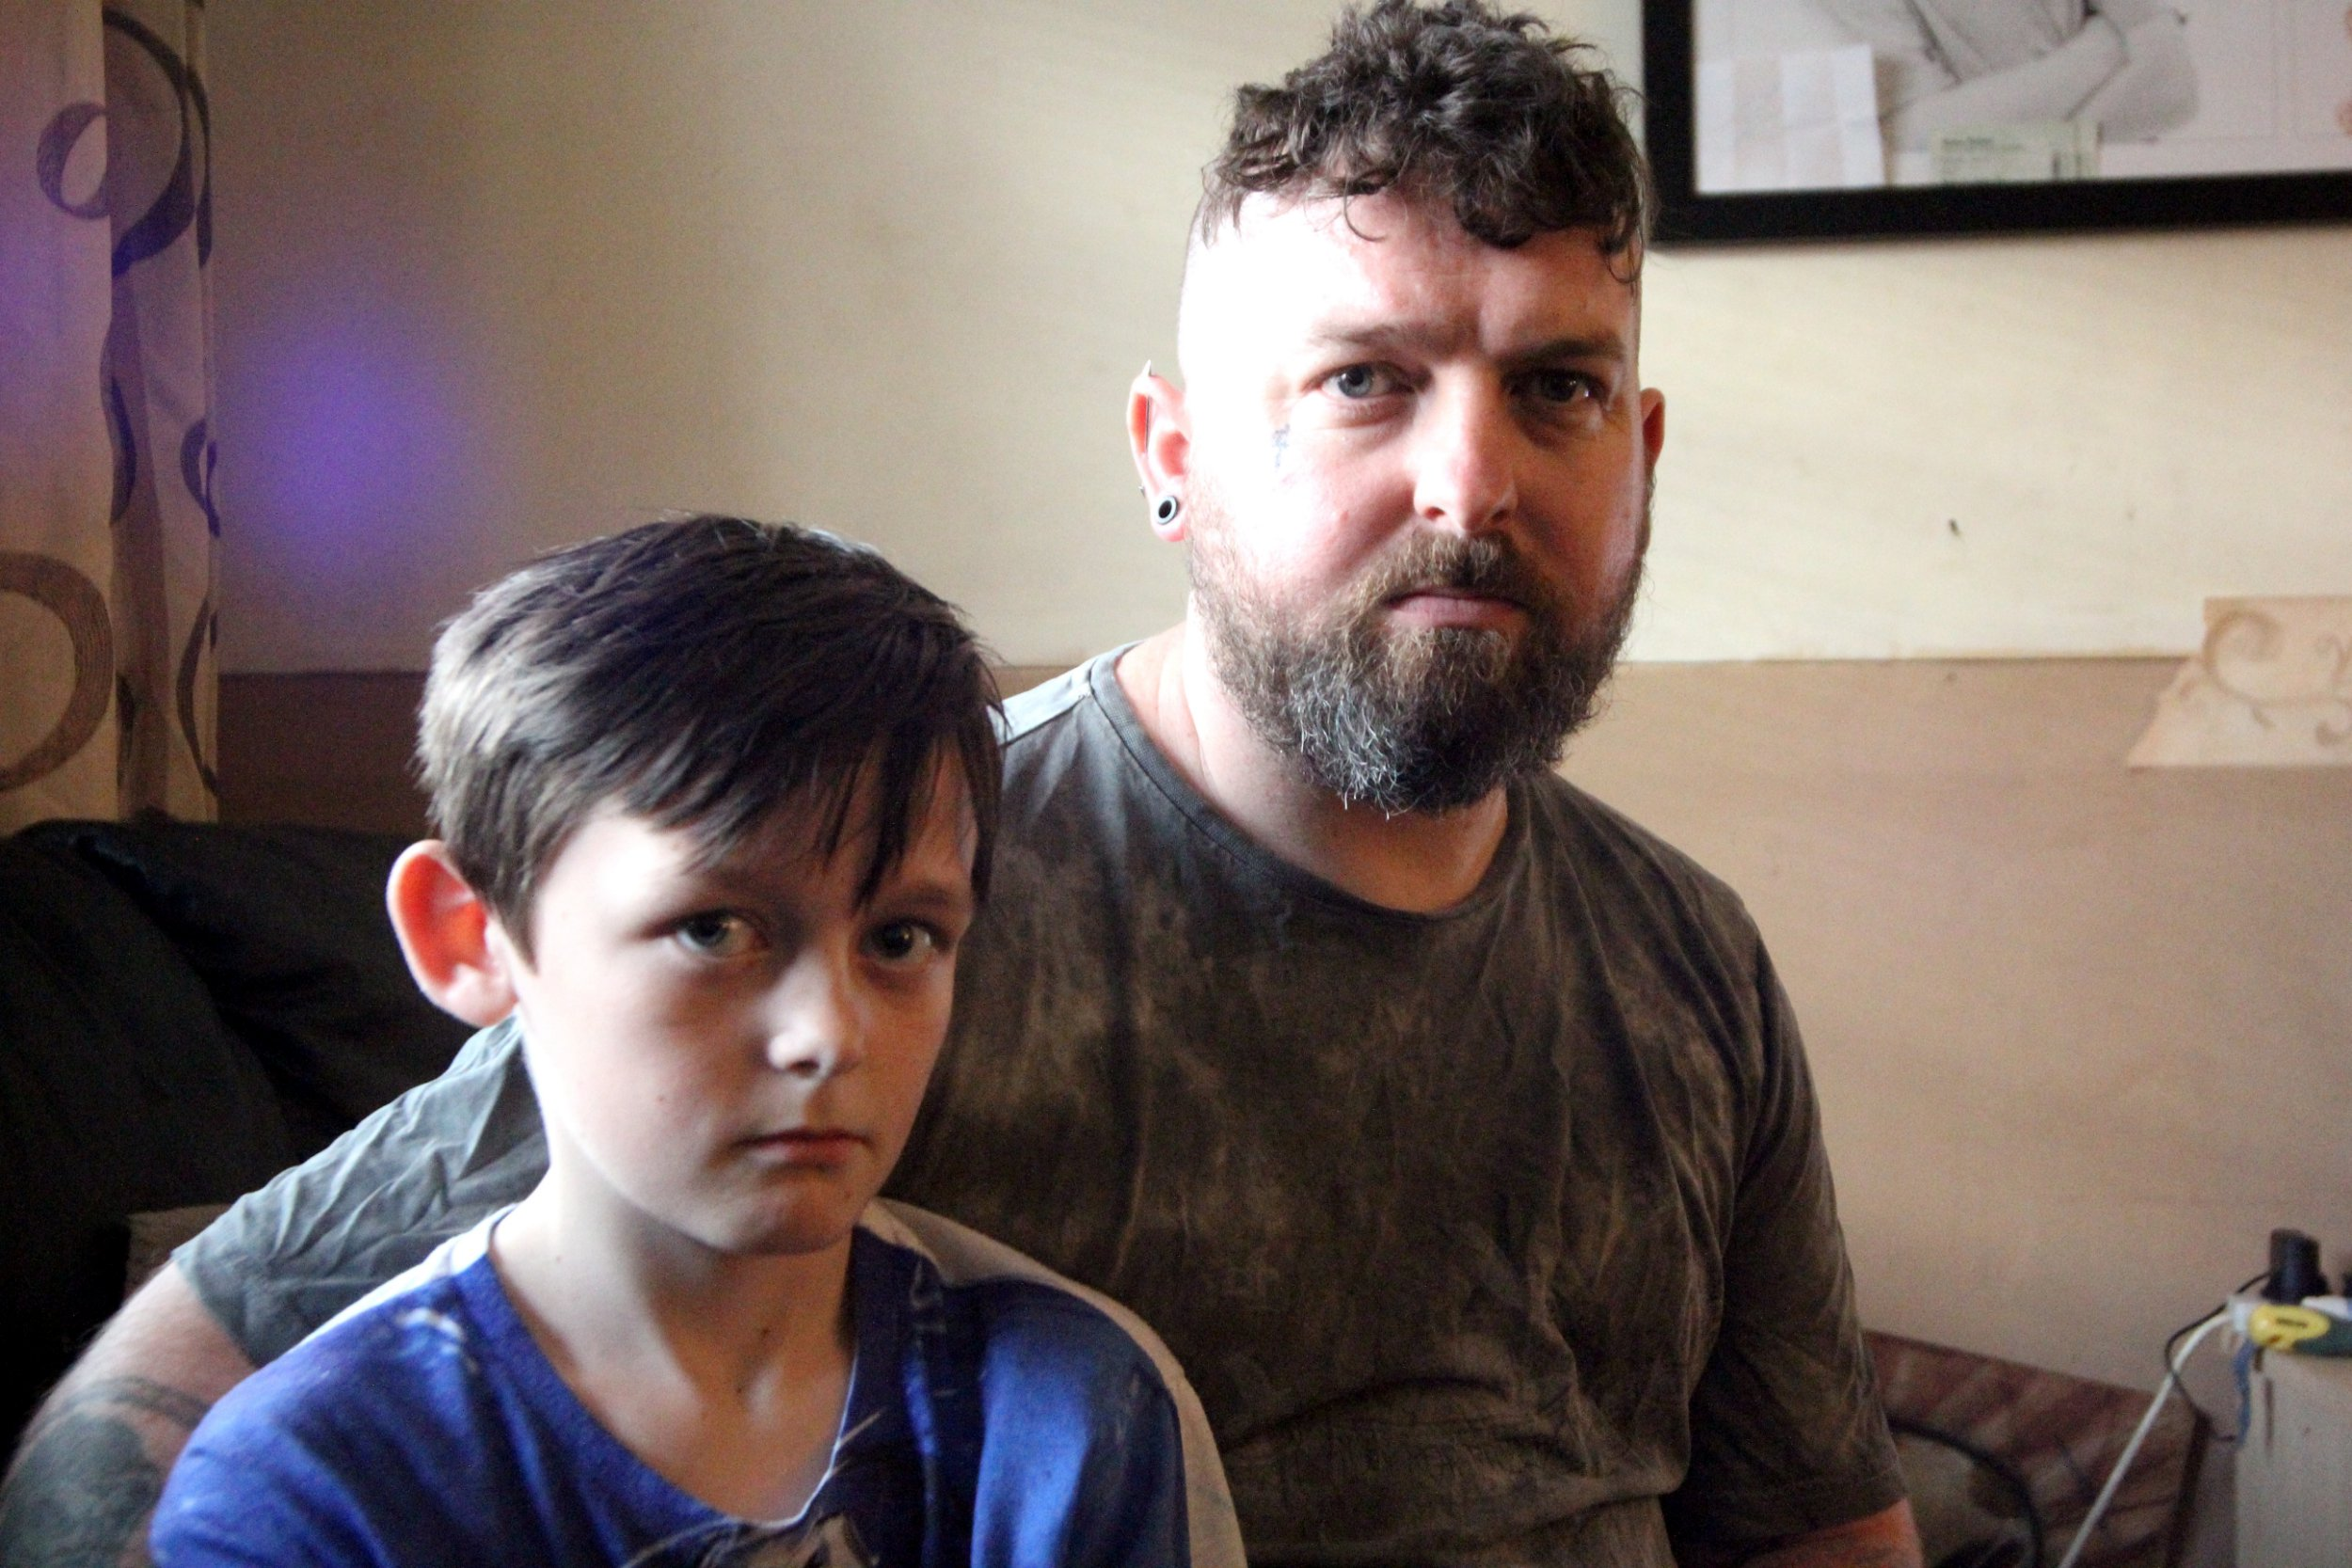 A dad is considering taking his son out of a secondary school amid claims his 12-year-old son keeps getting thrown out of classes for ?pulling faces.? According to Alex Shade, his son Shane is being ?slowly squeezed out of his education? at Kingswood Academy, in Hull, because of his disruptive behaviour. The 35-year-old said the school initially reduced the Year 7 pupil's time in classes to two hours a day as a result of the silliness - but says he has now been told that Shane will only do one hour a day at school after turning up with ?stars and stripes? in his hair.